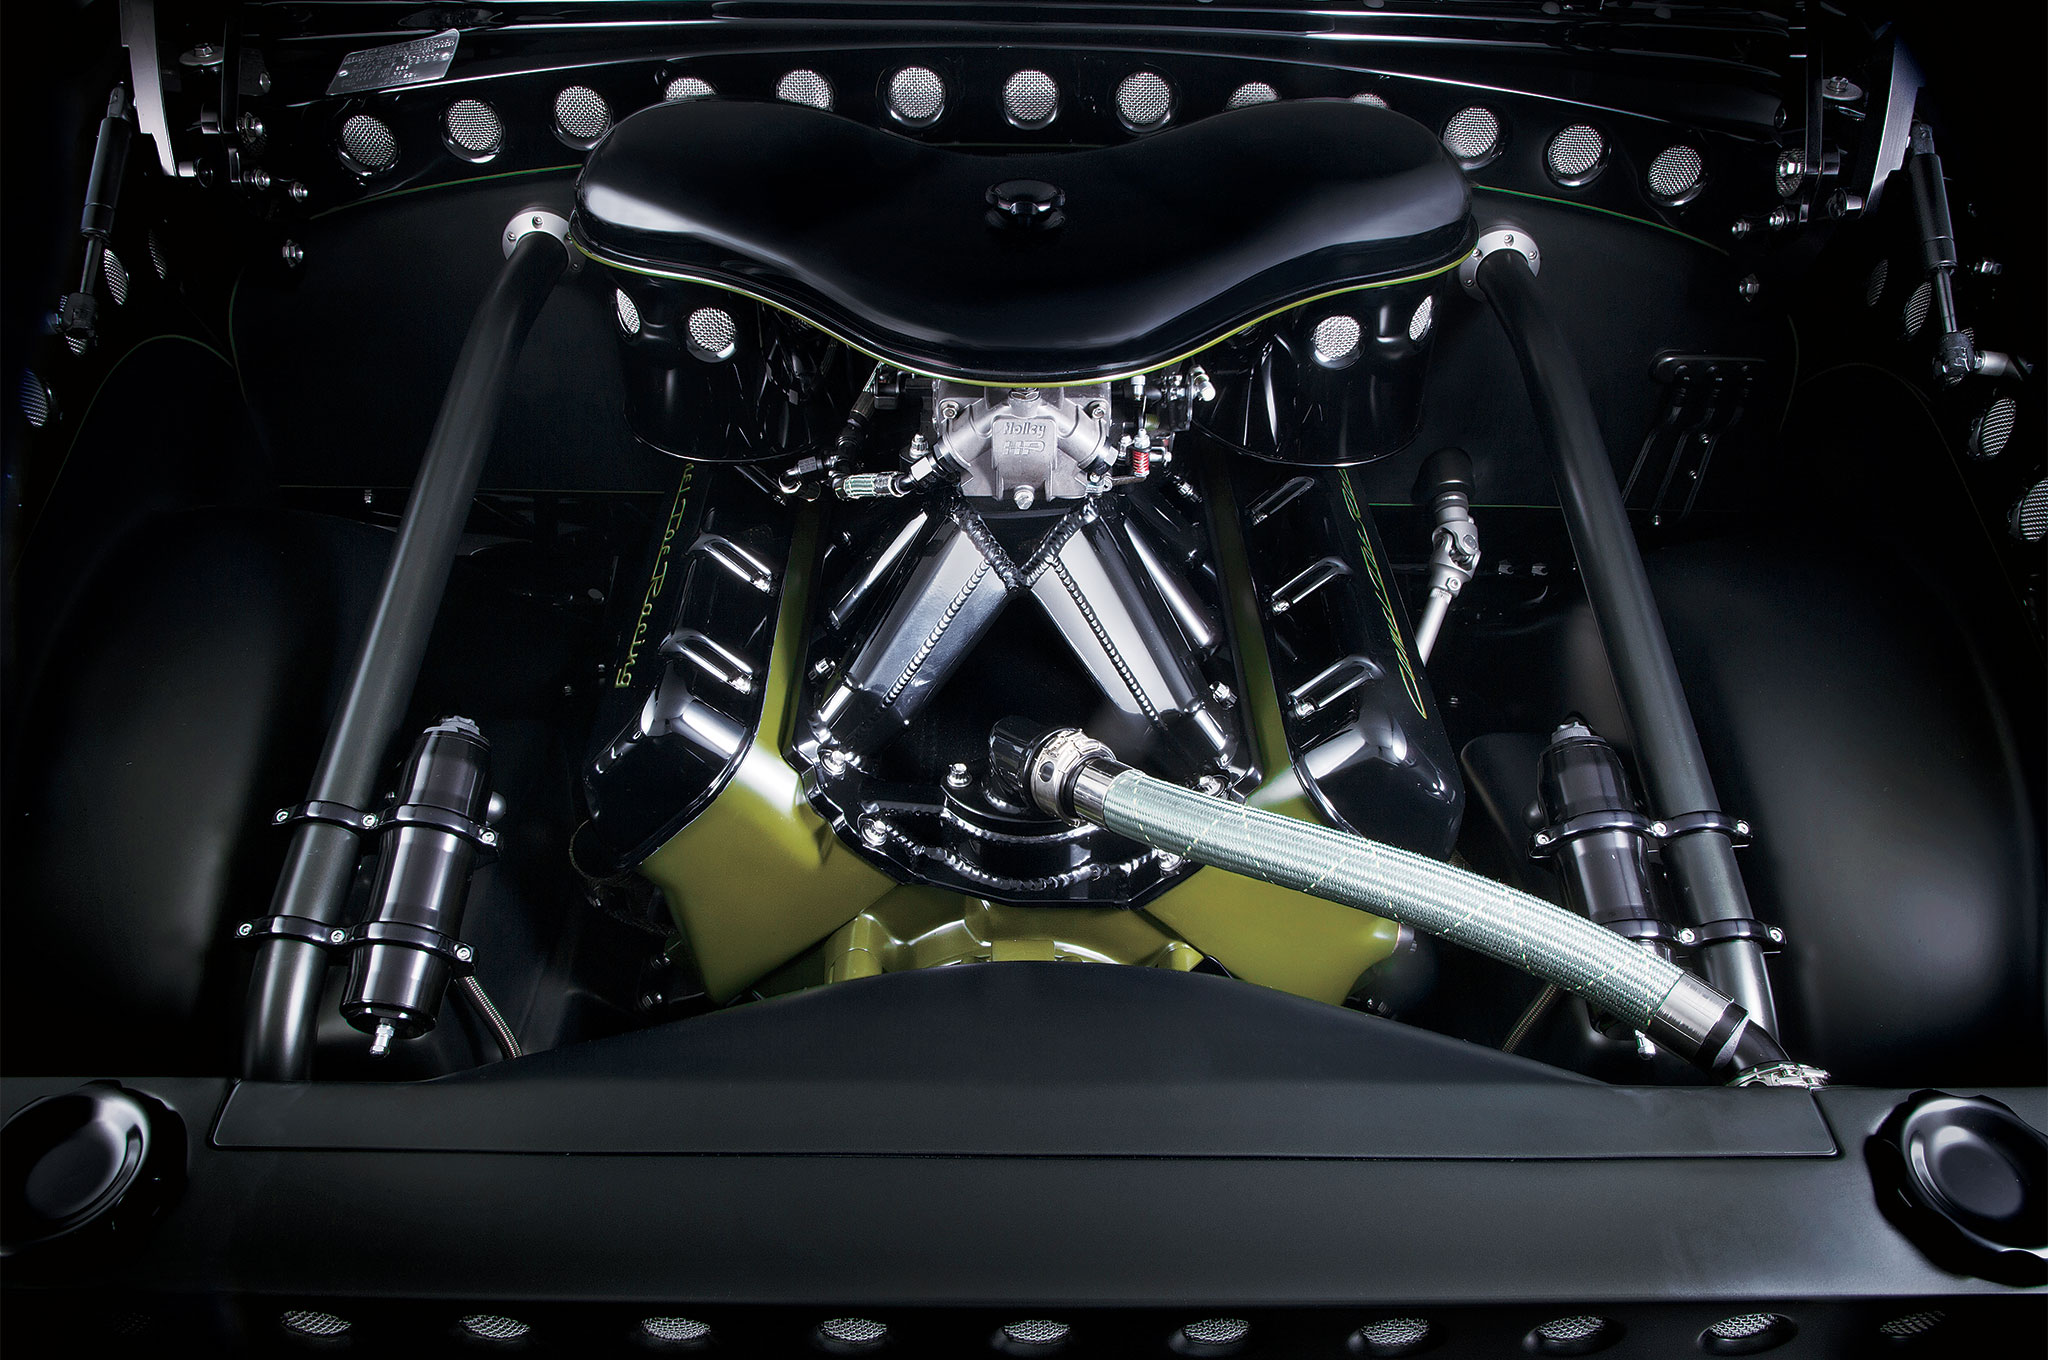 A 355-inch Rodeck block was built by FX Engines with a sheetmetal intake by Hogan Racing with a Holley 750-cfm four-barrel.